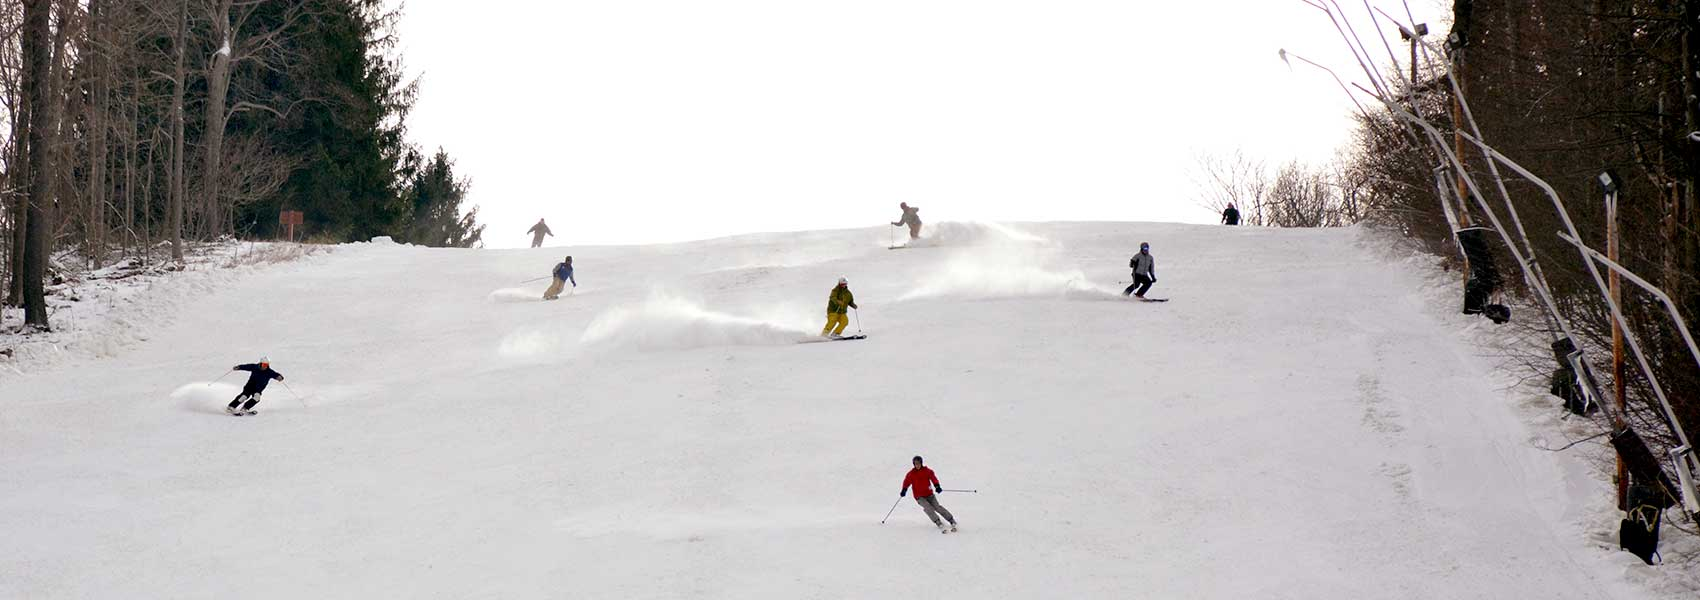 Skiers coming down the slope